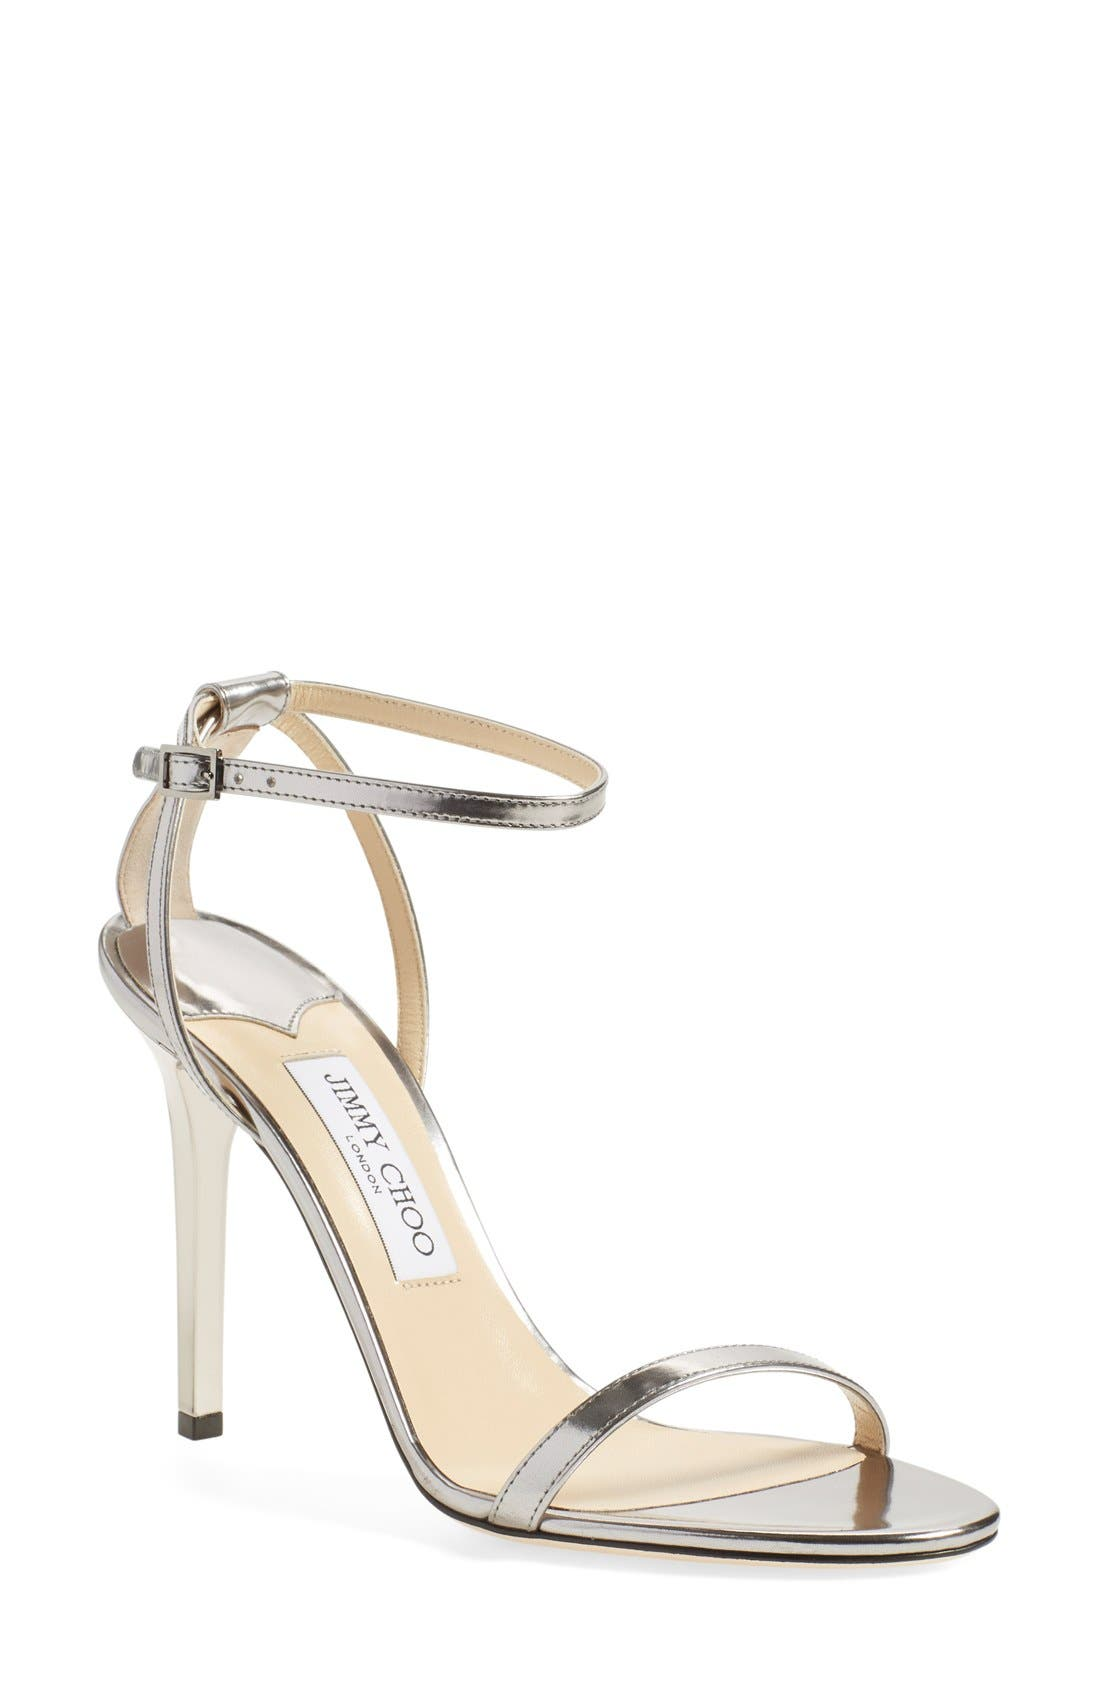 JIMMY CHOO 'Minny' Ankle Strap Sandal, Main, color, 040